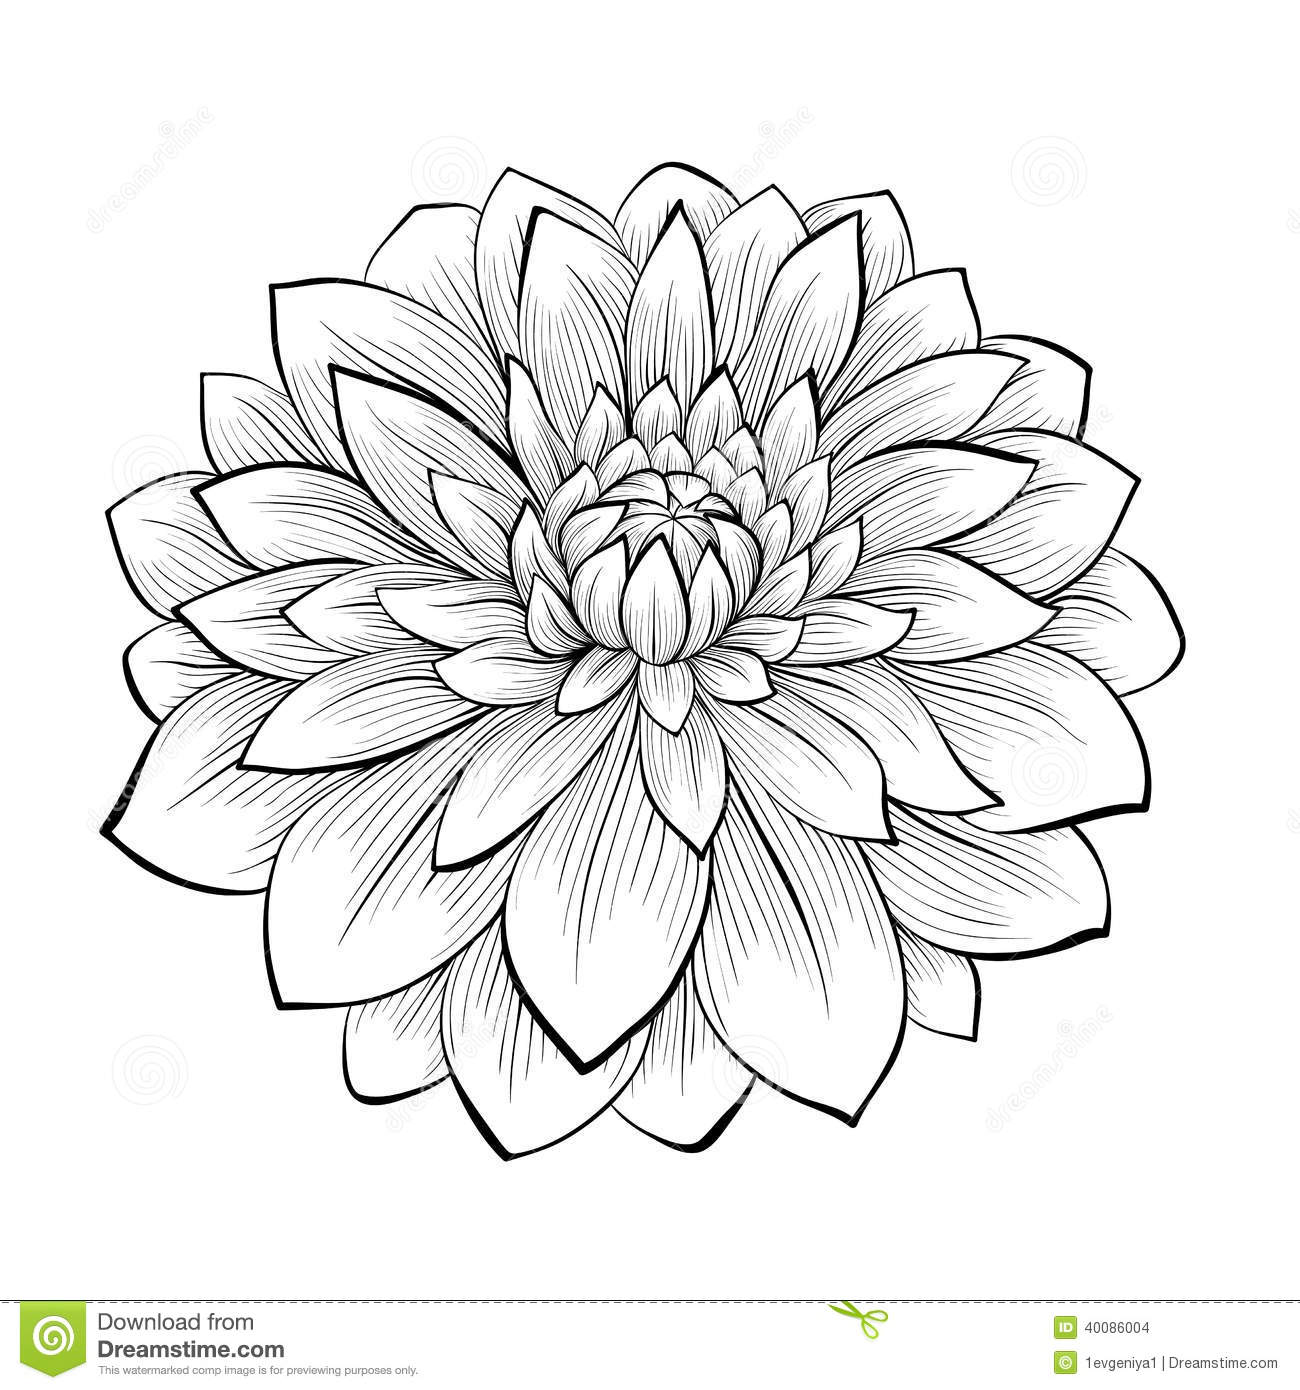 Contour Line Drawing Of A Plant : Beautiful monochrome black and white dahlia flower